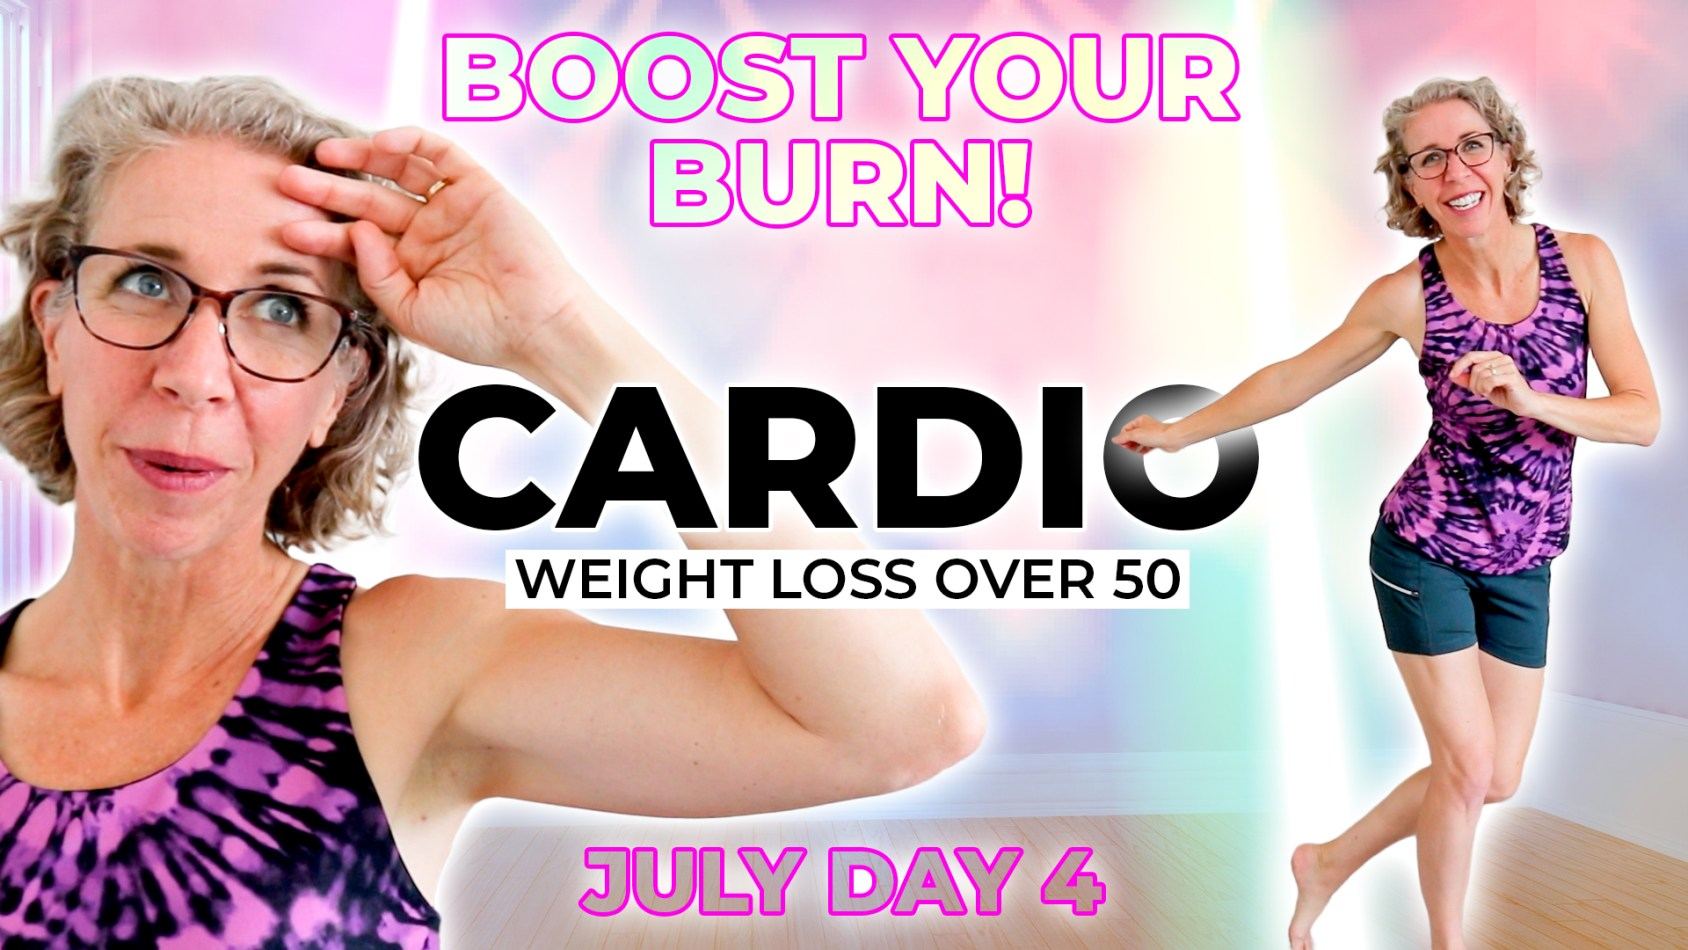 CARDIO Weight Loss Workout for Women in Menopause